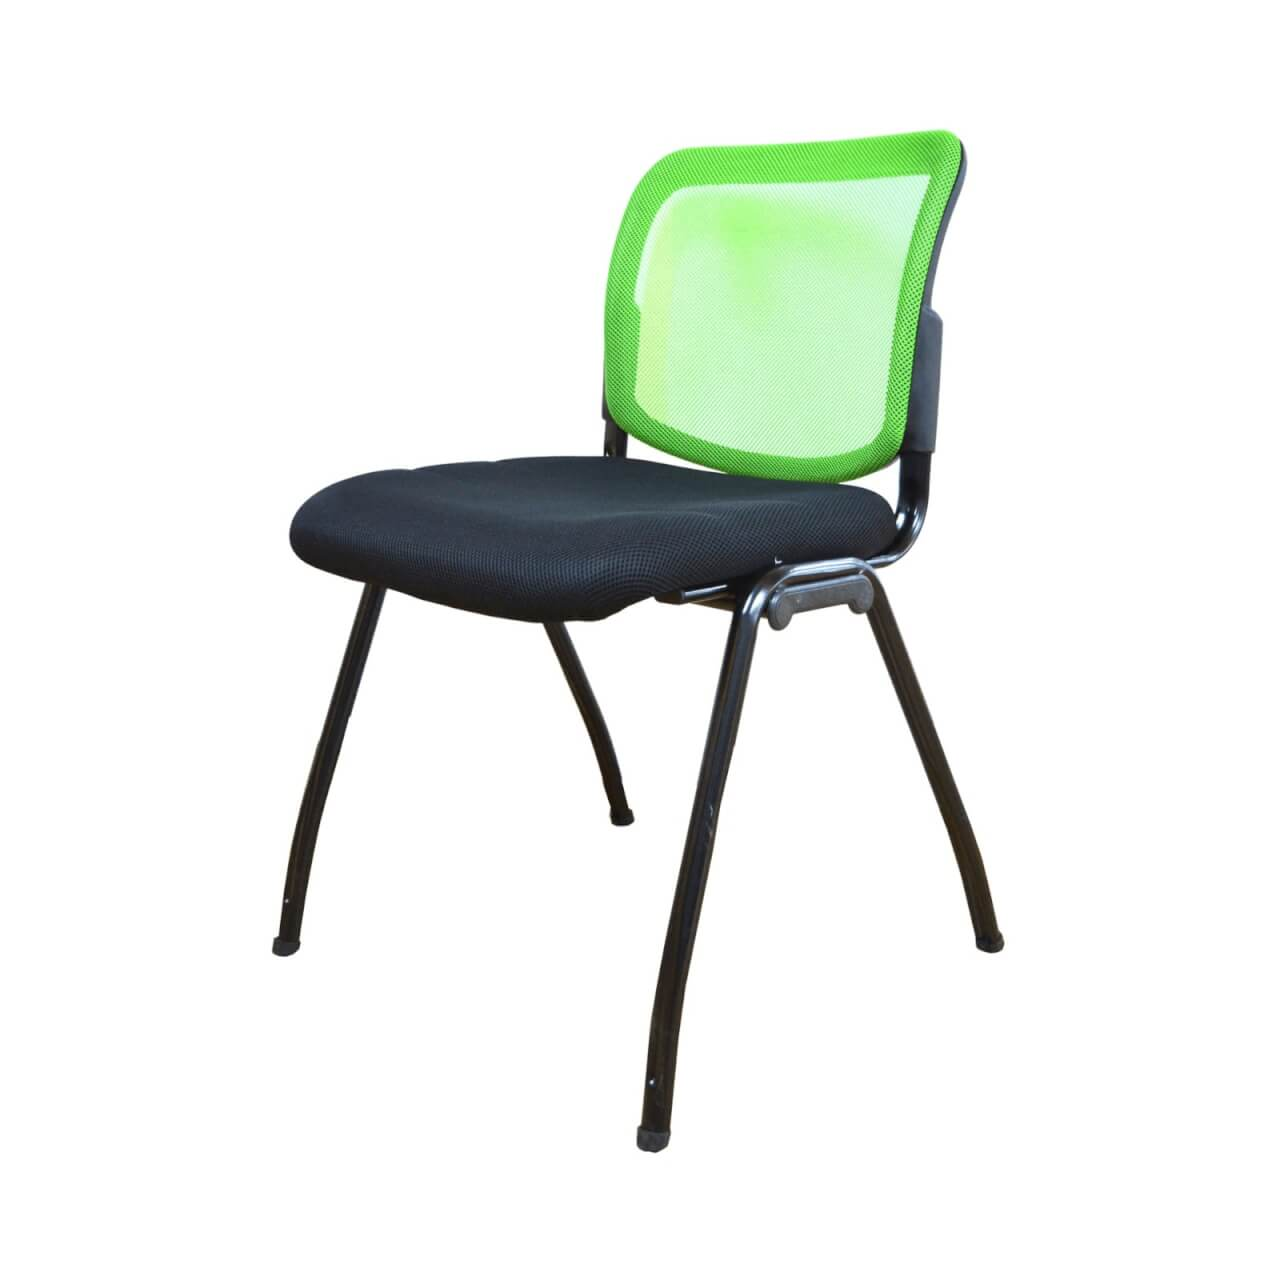 deluxe-vc-meshback-chair-green